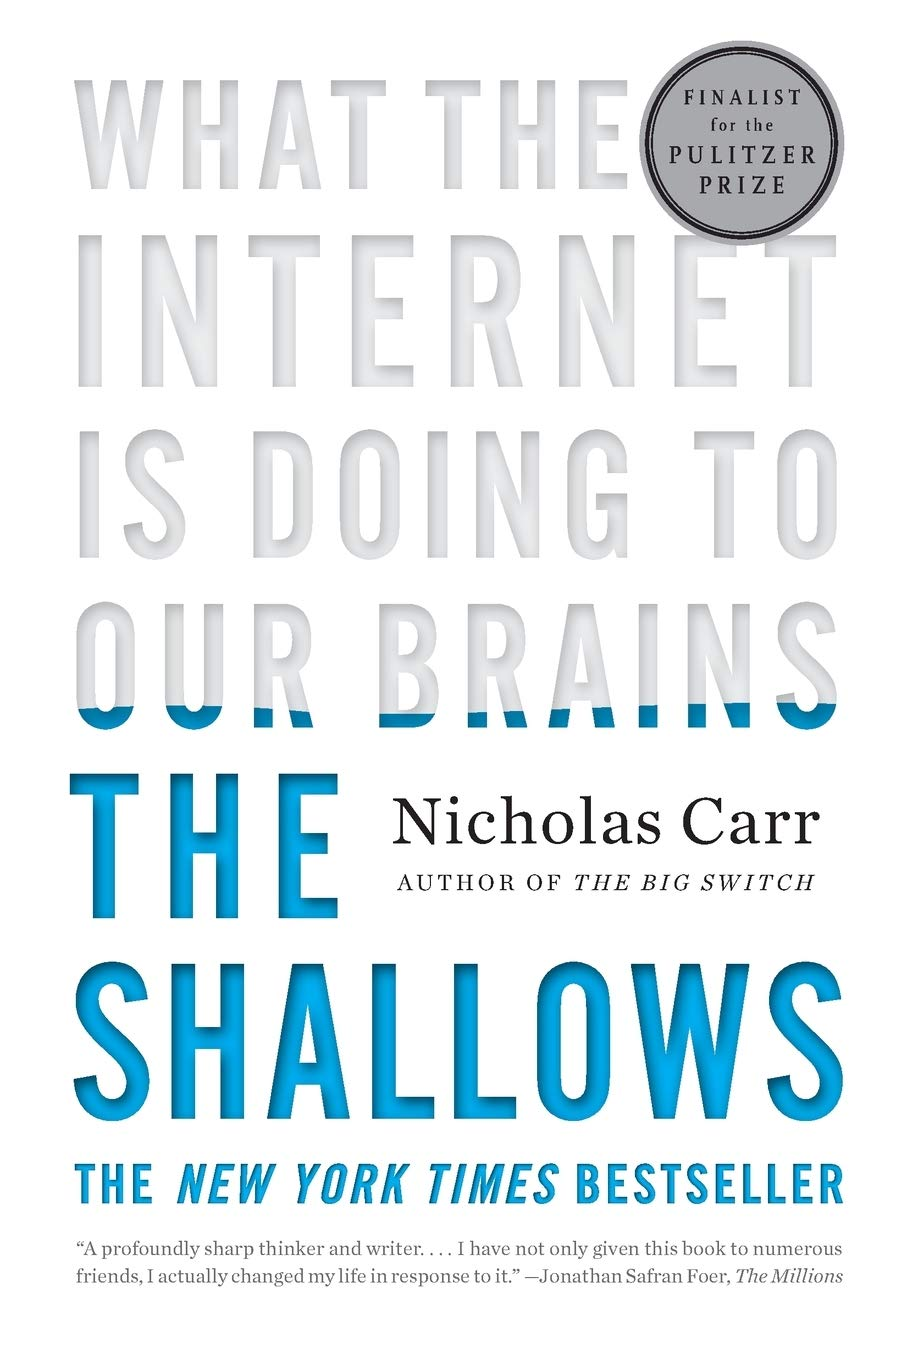 The Shallows book cover by Nicholas Carr.